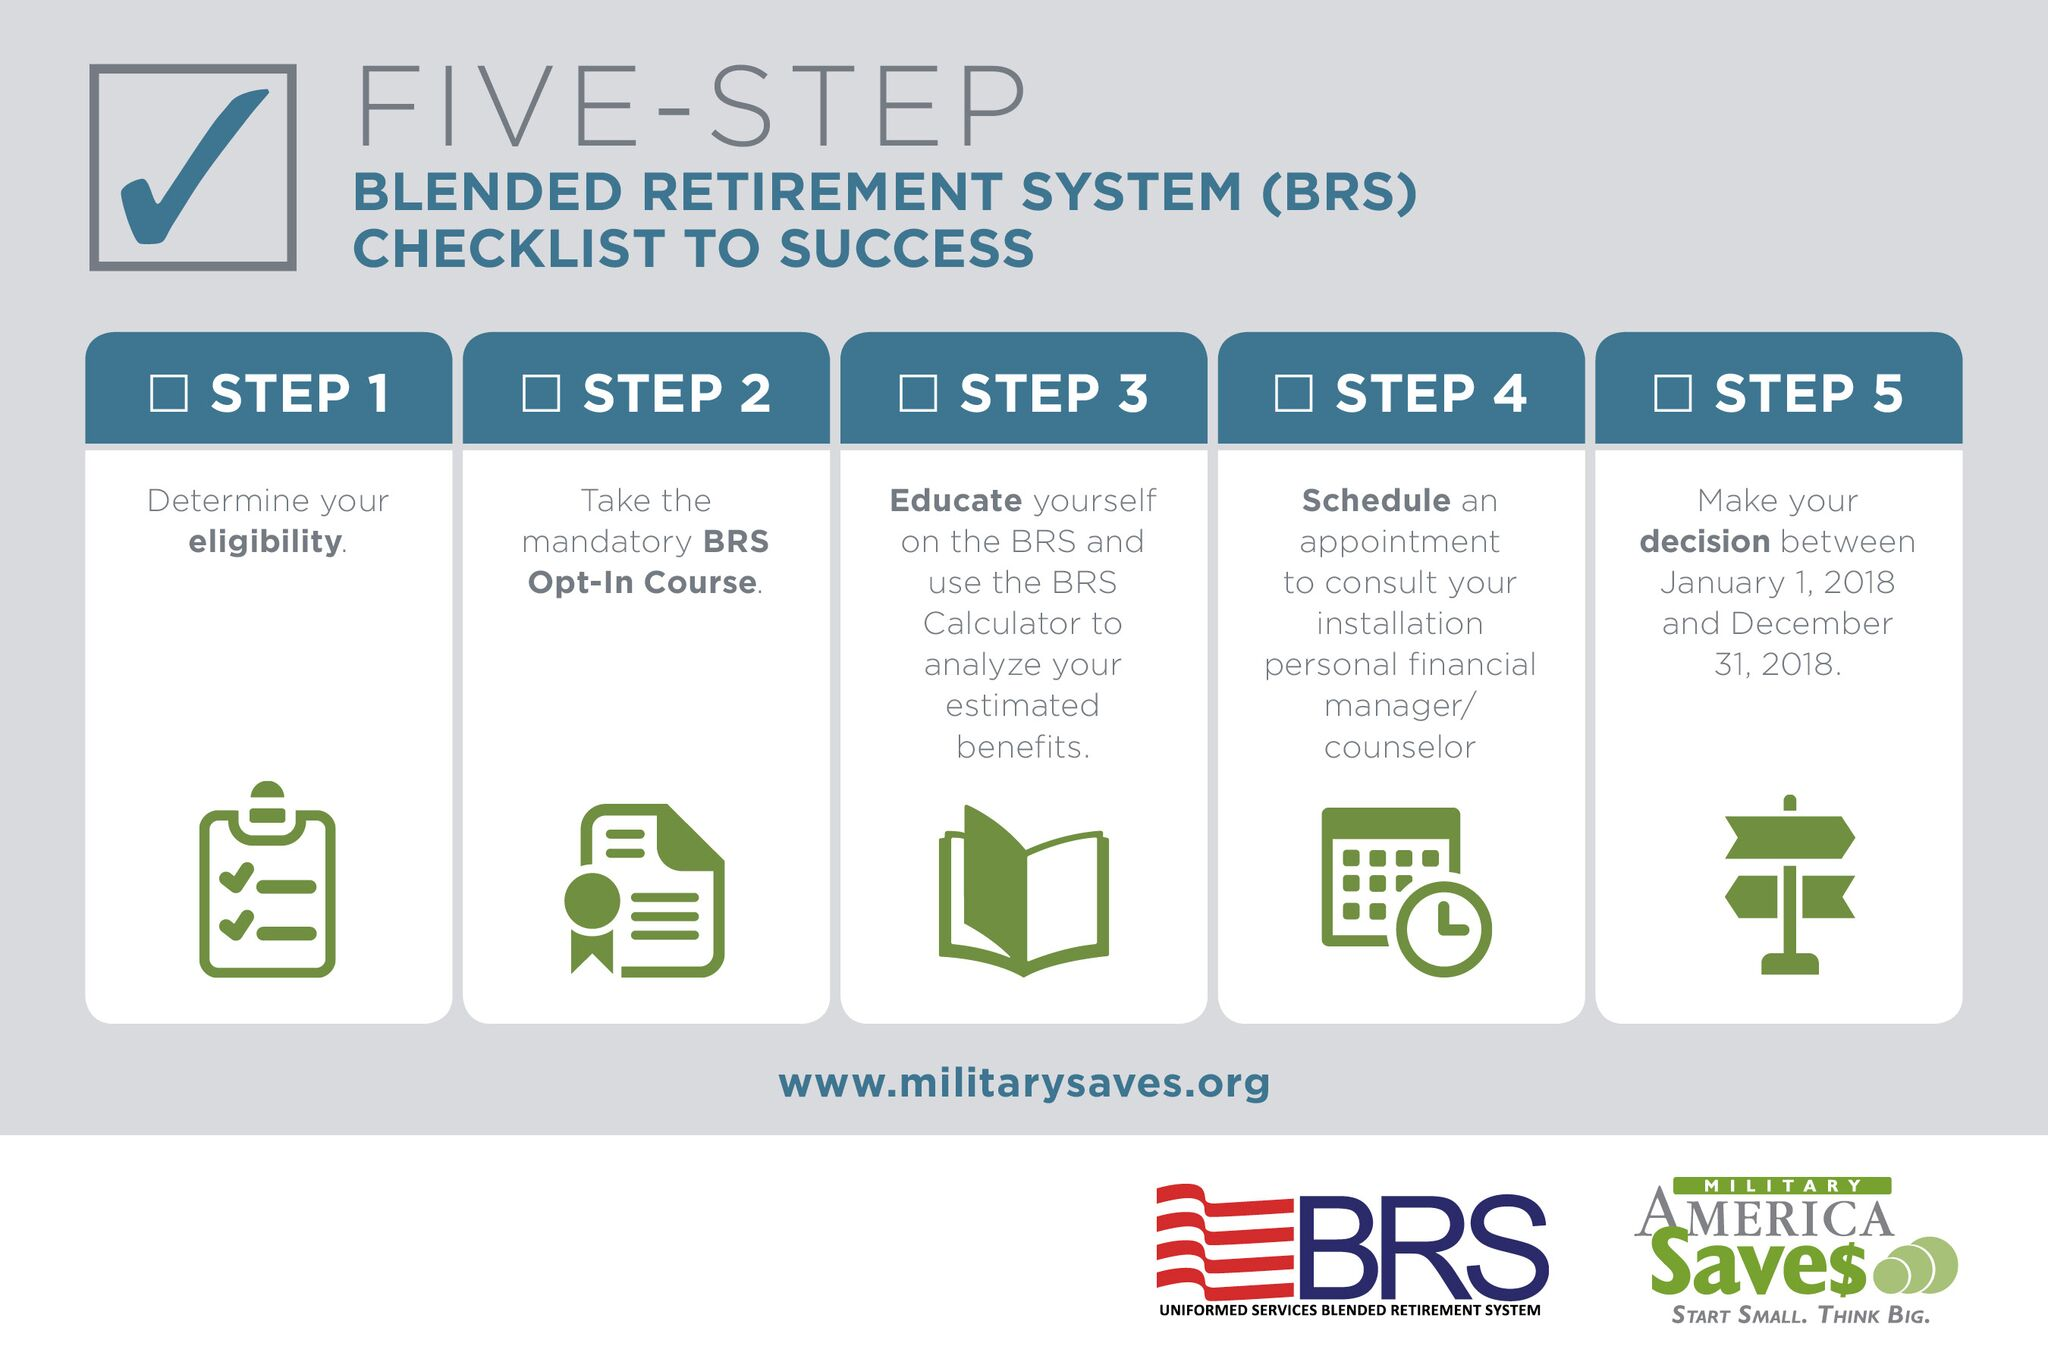 Your Five Step Blended Retirement System Checklist To